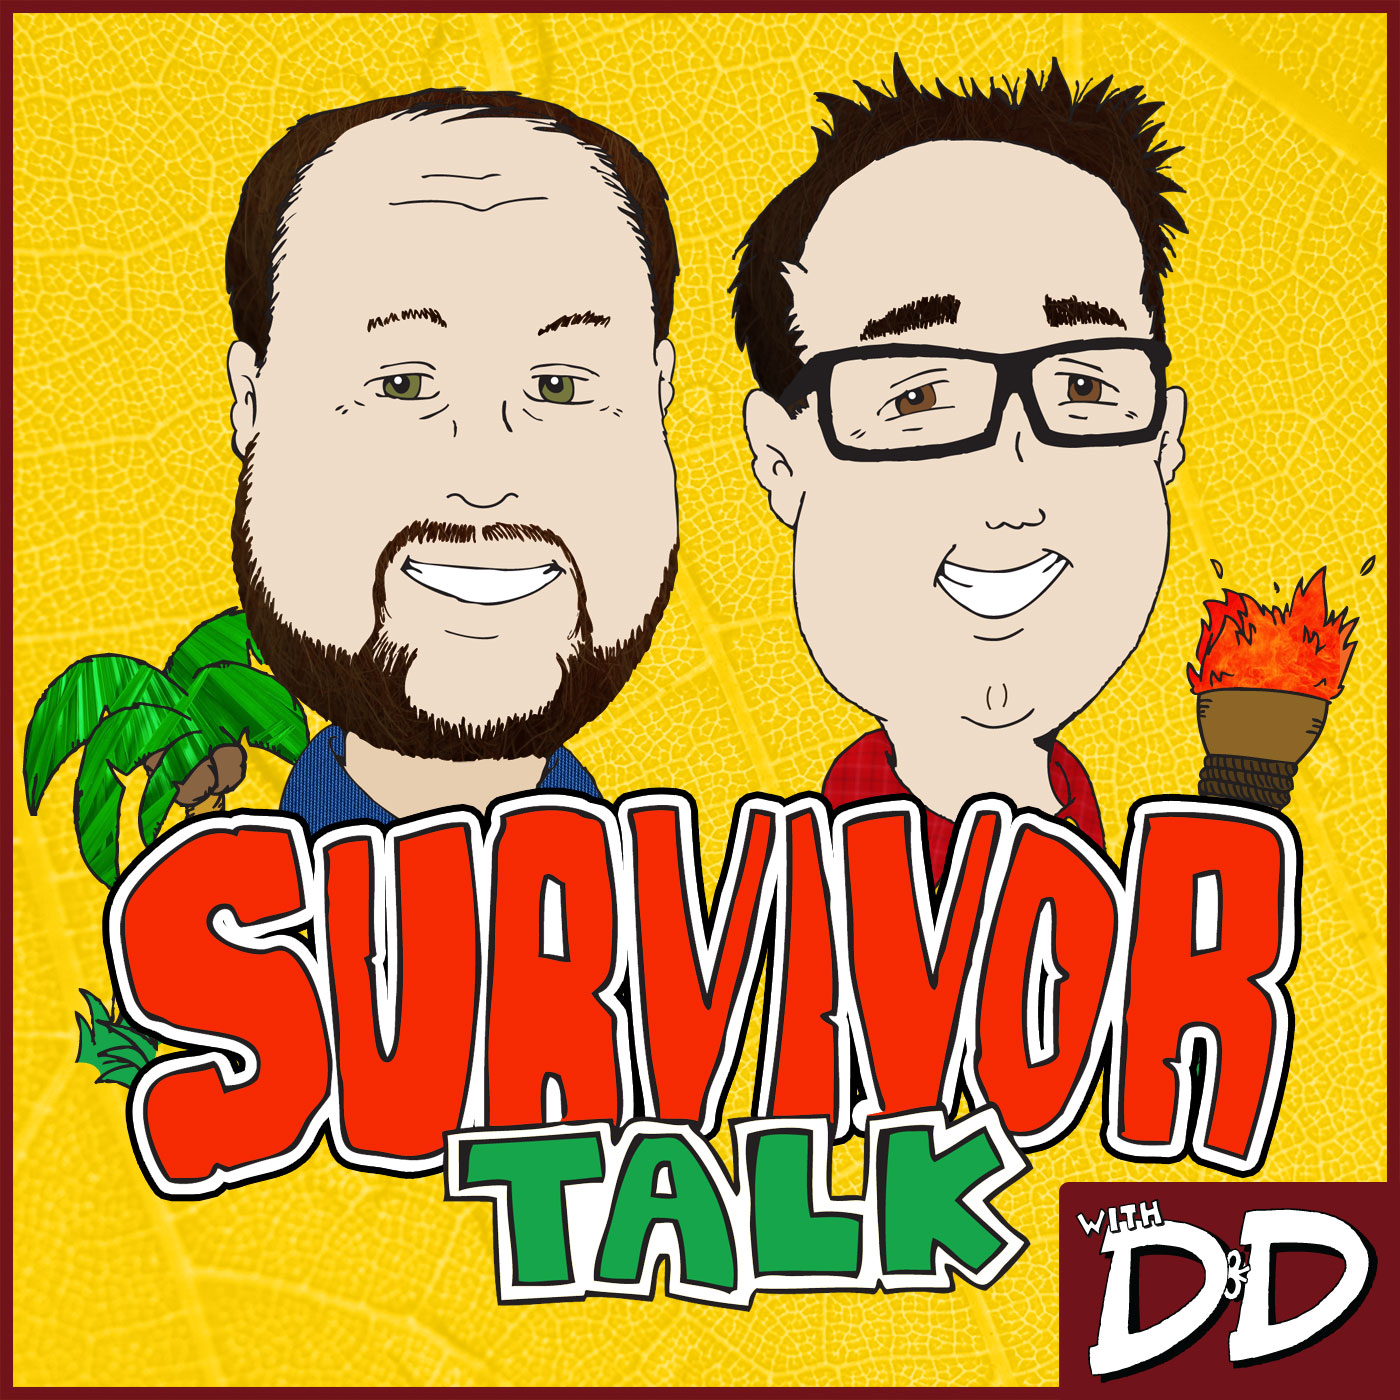 Survivor: Cagayan - D&D Survivor Fantasy Draft (episode 137)